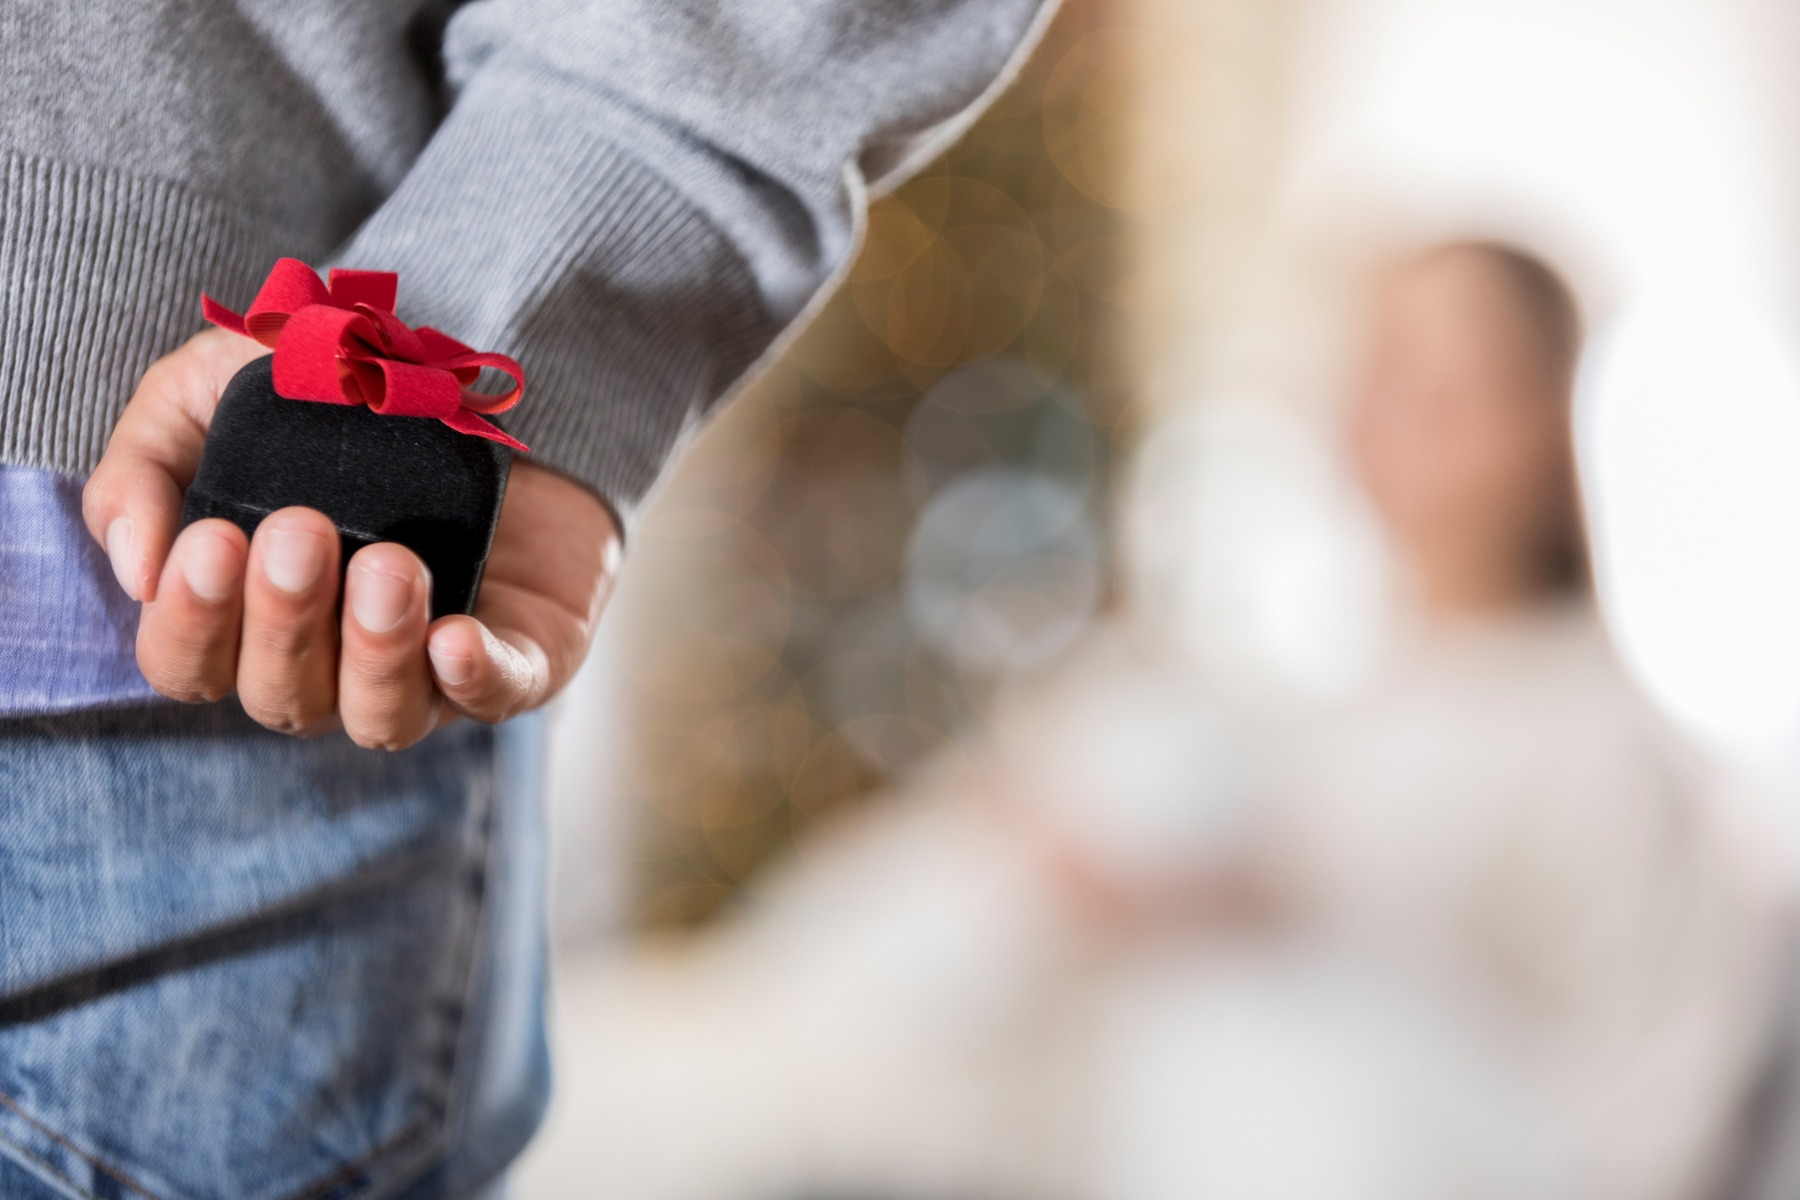 Man holding ring box behind his back ahead of marriage proposal